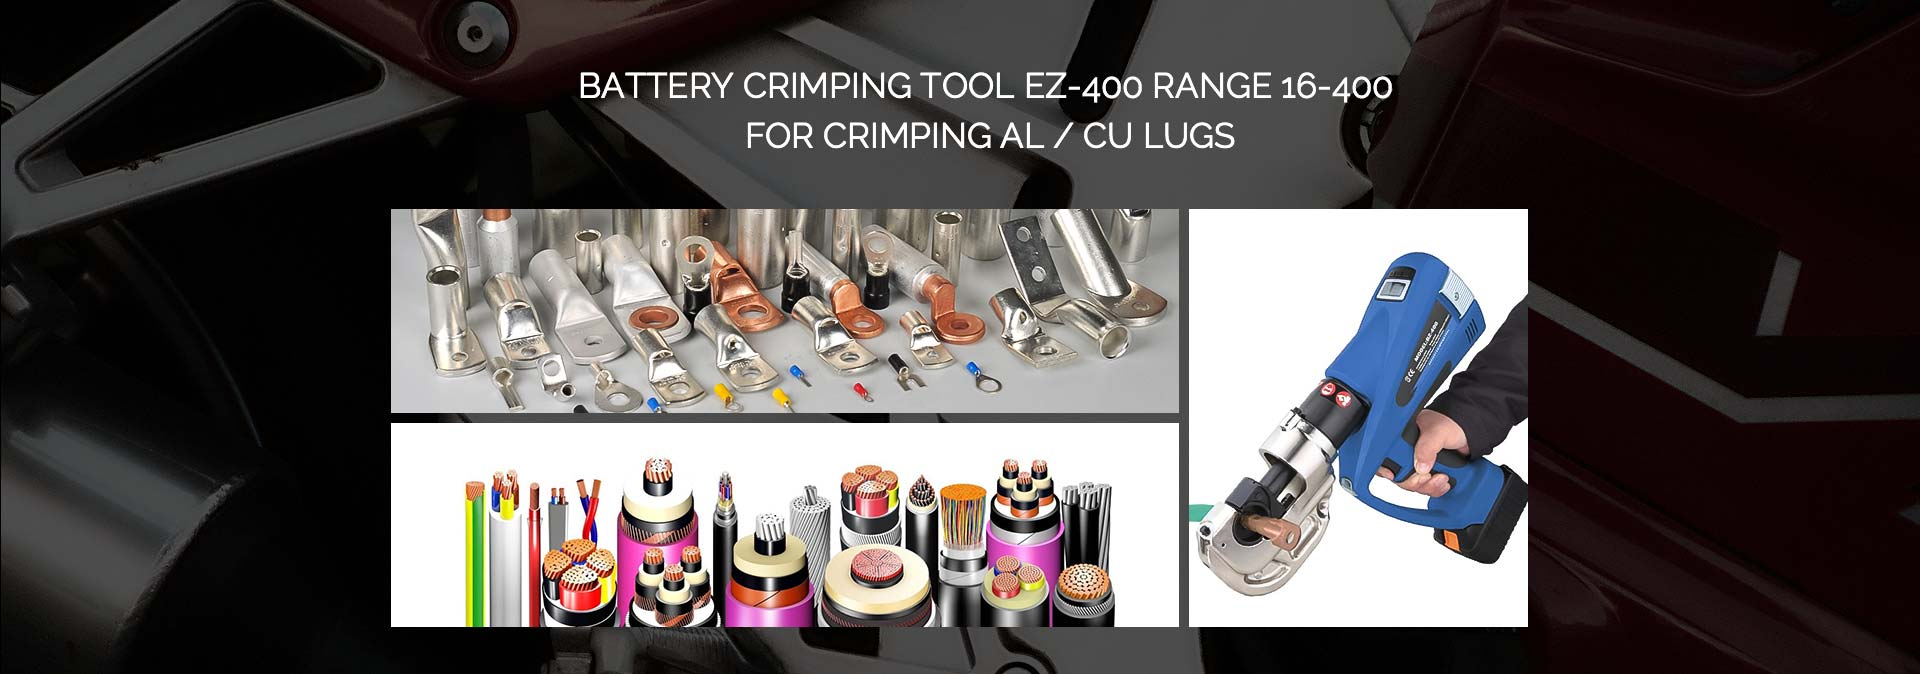 Battery Crimping Tool EZ-400 range 16-400 for crimping Al/ Cu lugs